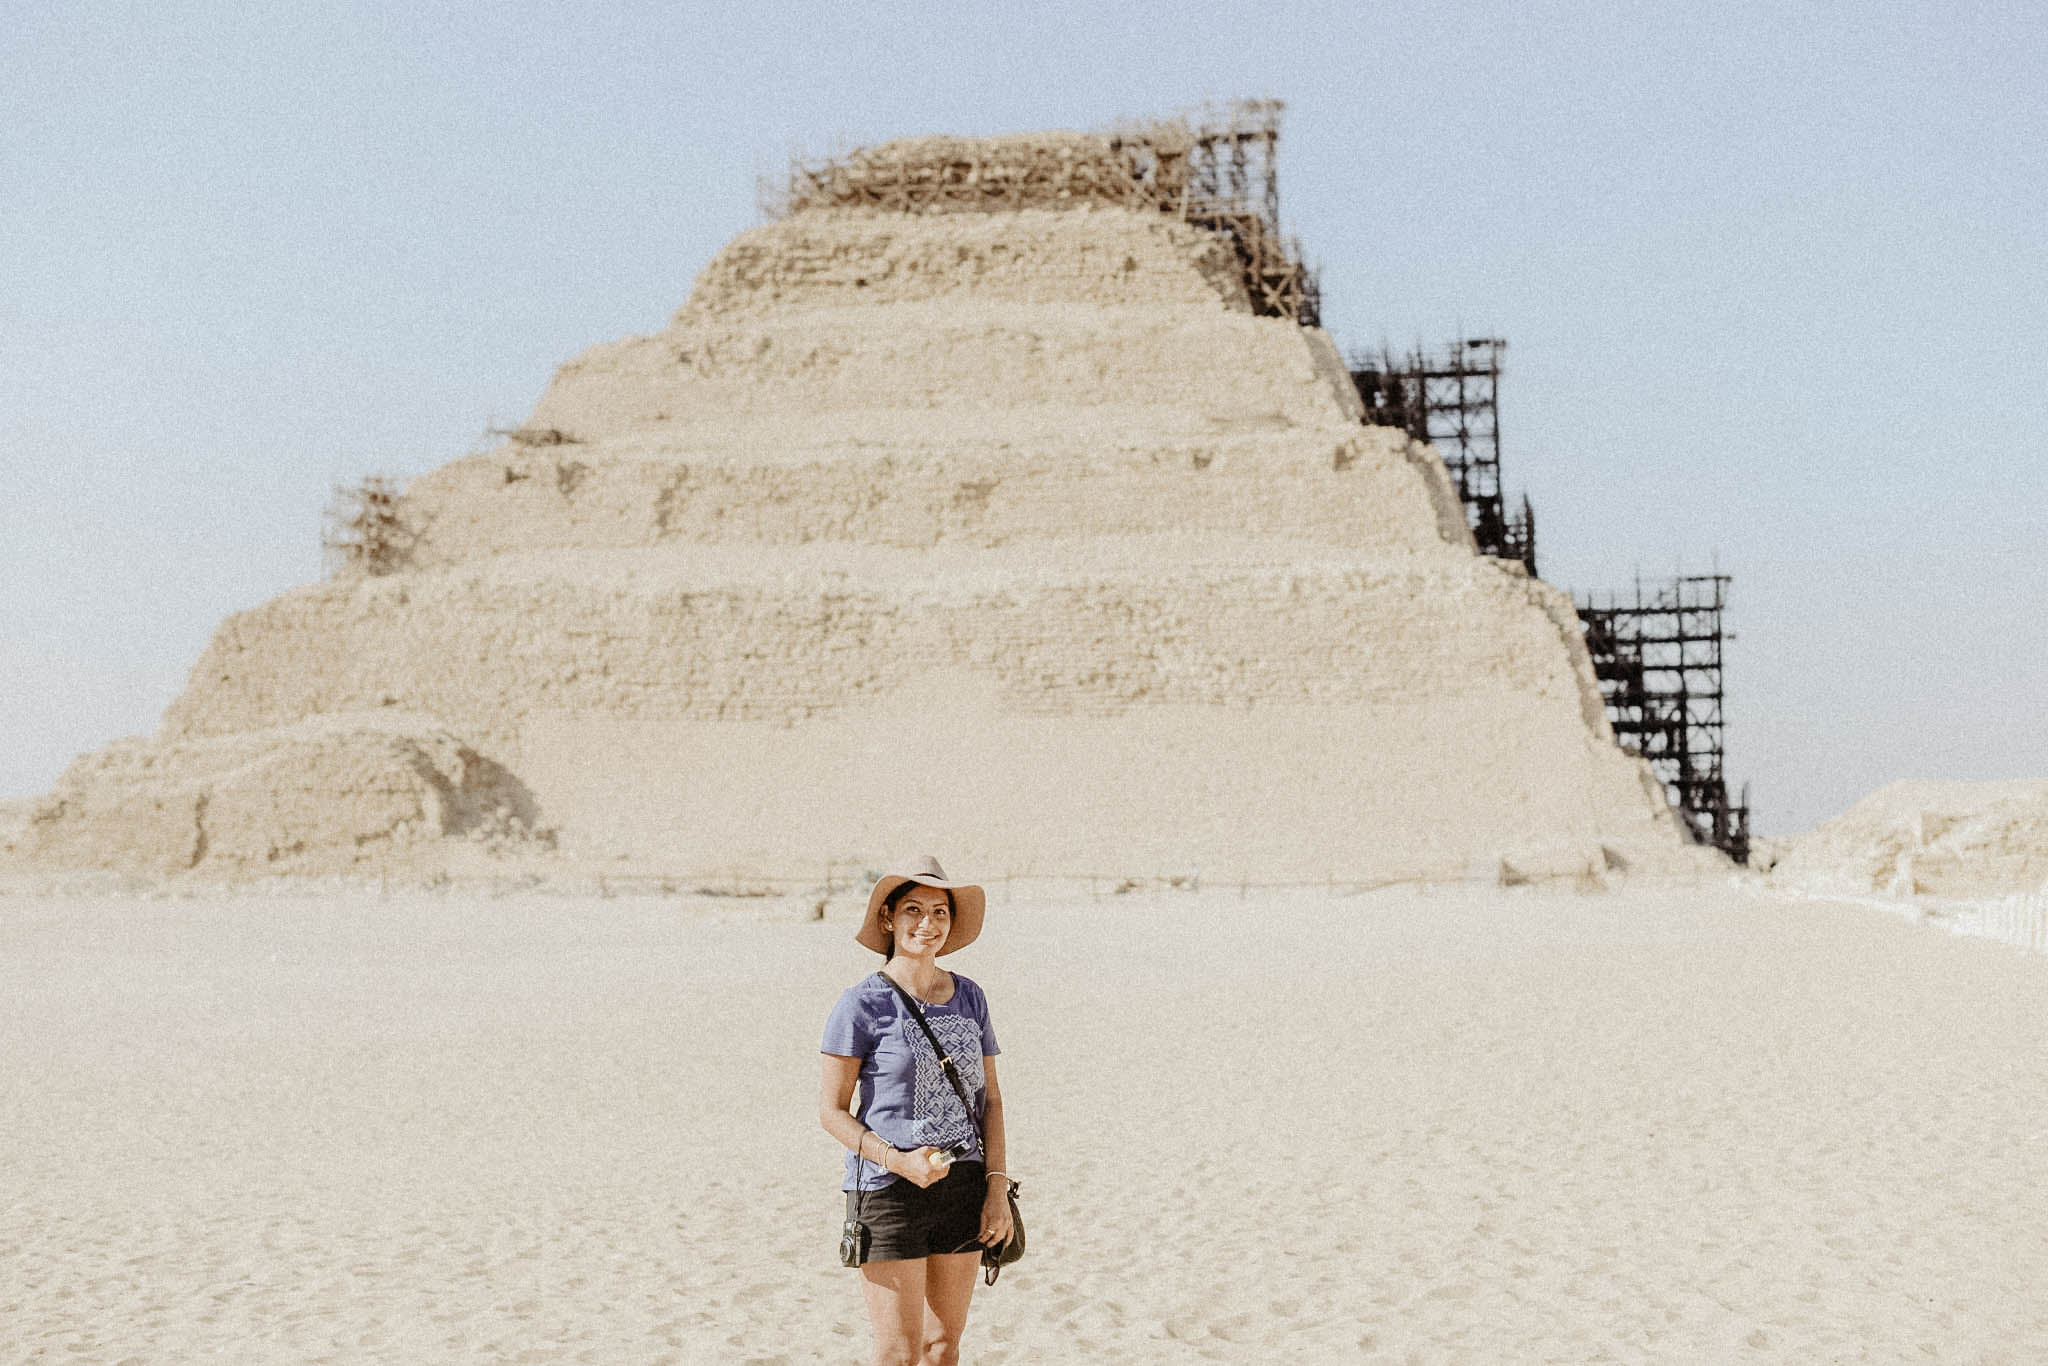 Step Pyramid of Djoser: - Another location that wasn't too far from the Pyramids or Sphinx. As you can tell by my clothing, we were able to visit all locations in one day, I swear I'm not re-wearing anything lol Plus, with the weather and how hot it was, I wouldn't even give it a try.